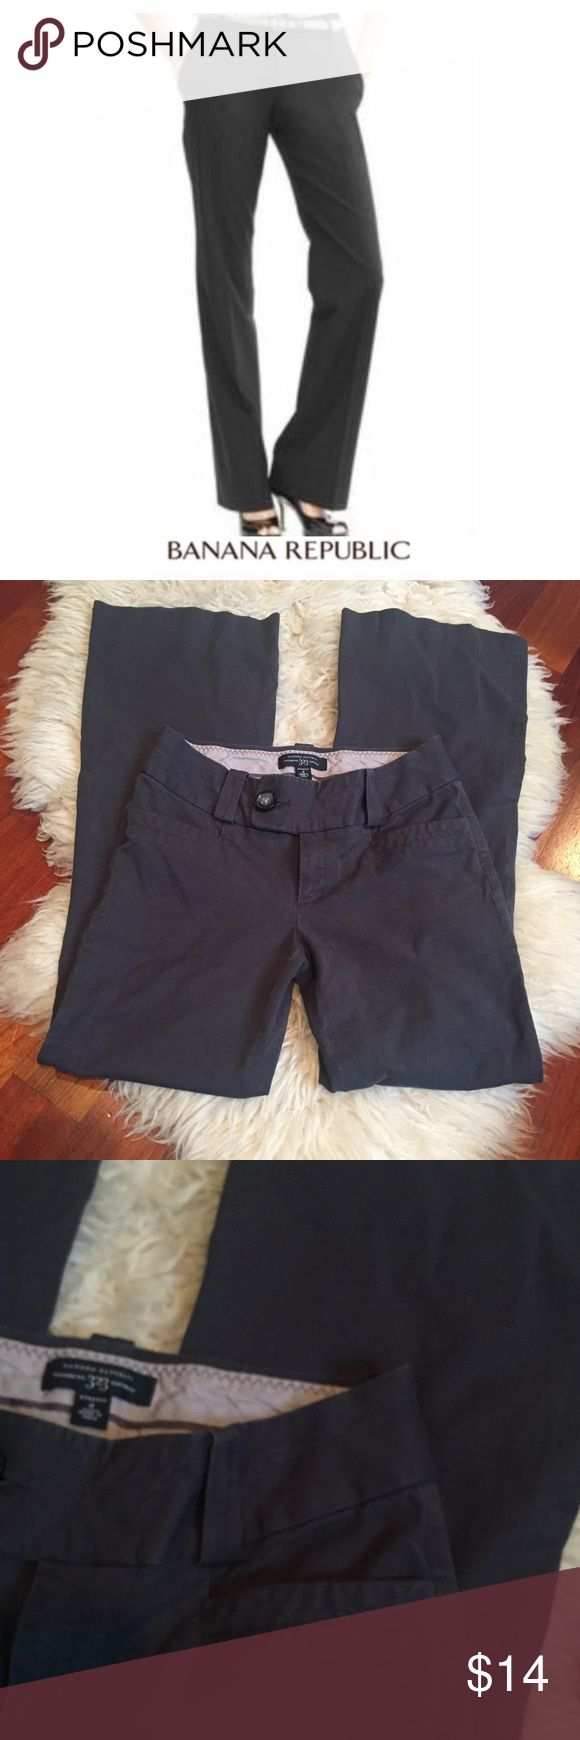 Banana Republic Dark Gray 323 Martin Fit Trousers Banana Republic Dark Gray 323 Martin Fit Trousers. Gently worn. Great condition. 8.5 inch rise. 31 inch inseam. Feel free to make an offer or bundle & save. Banana Republic Pants Trousers